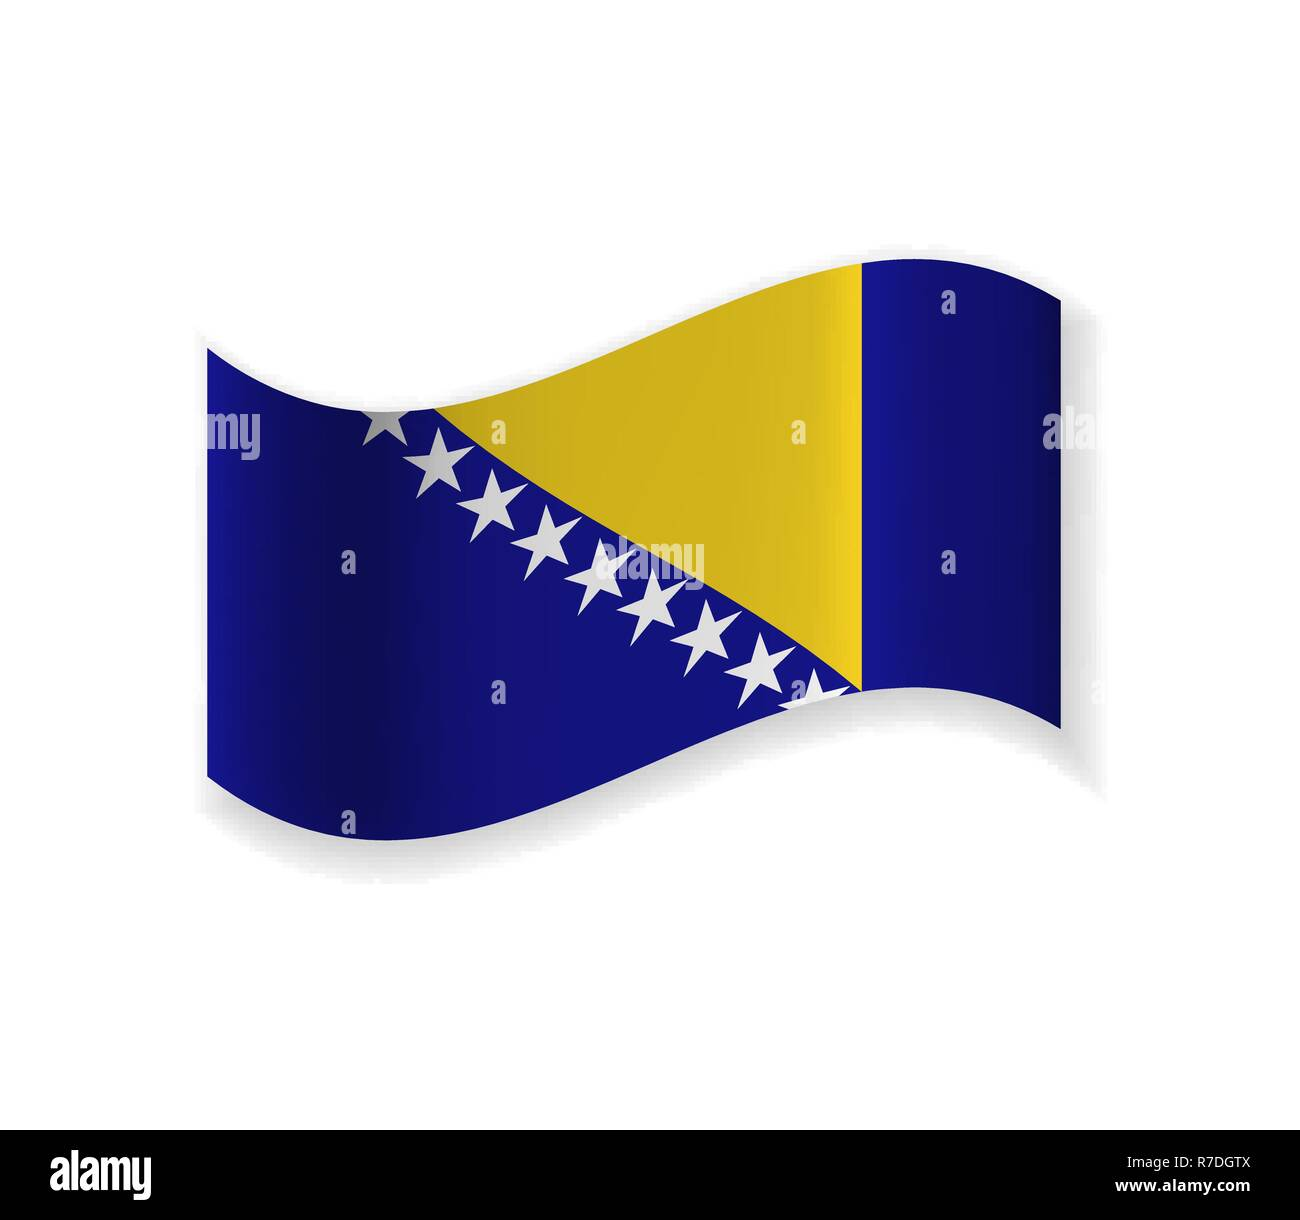 The flag of Bosnia and Herzegovina. country in Europe. National symbol. Vector illustration. - Stock Vector